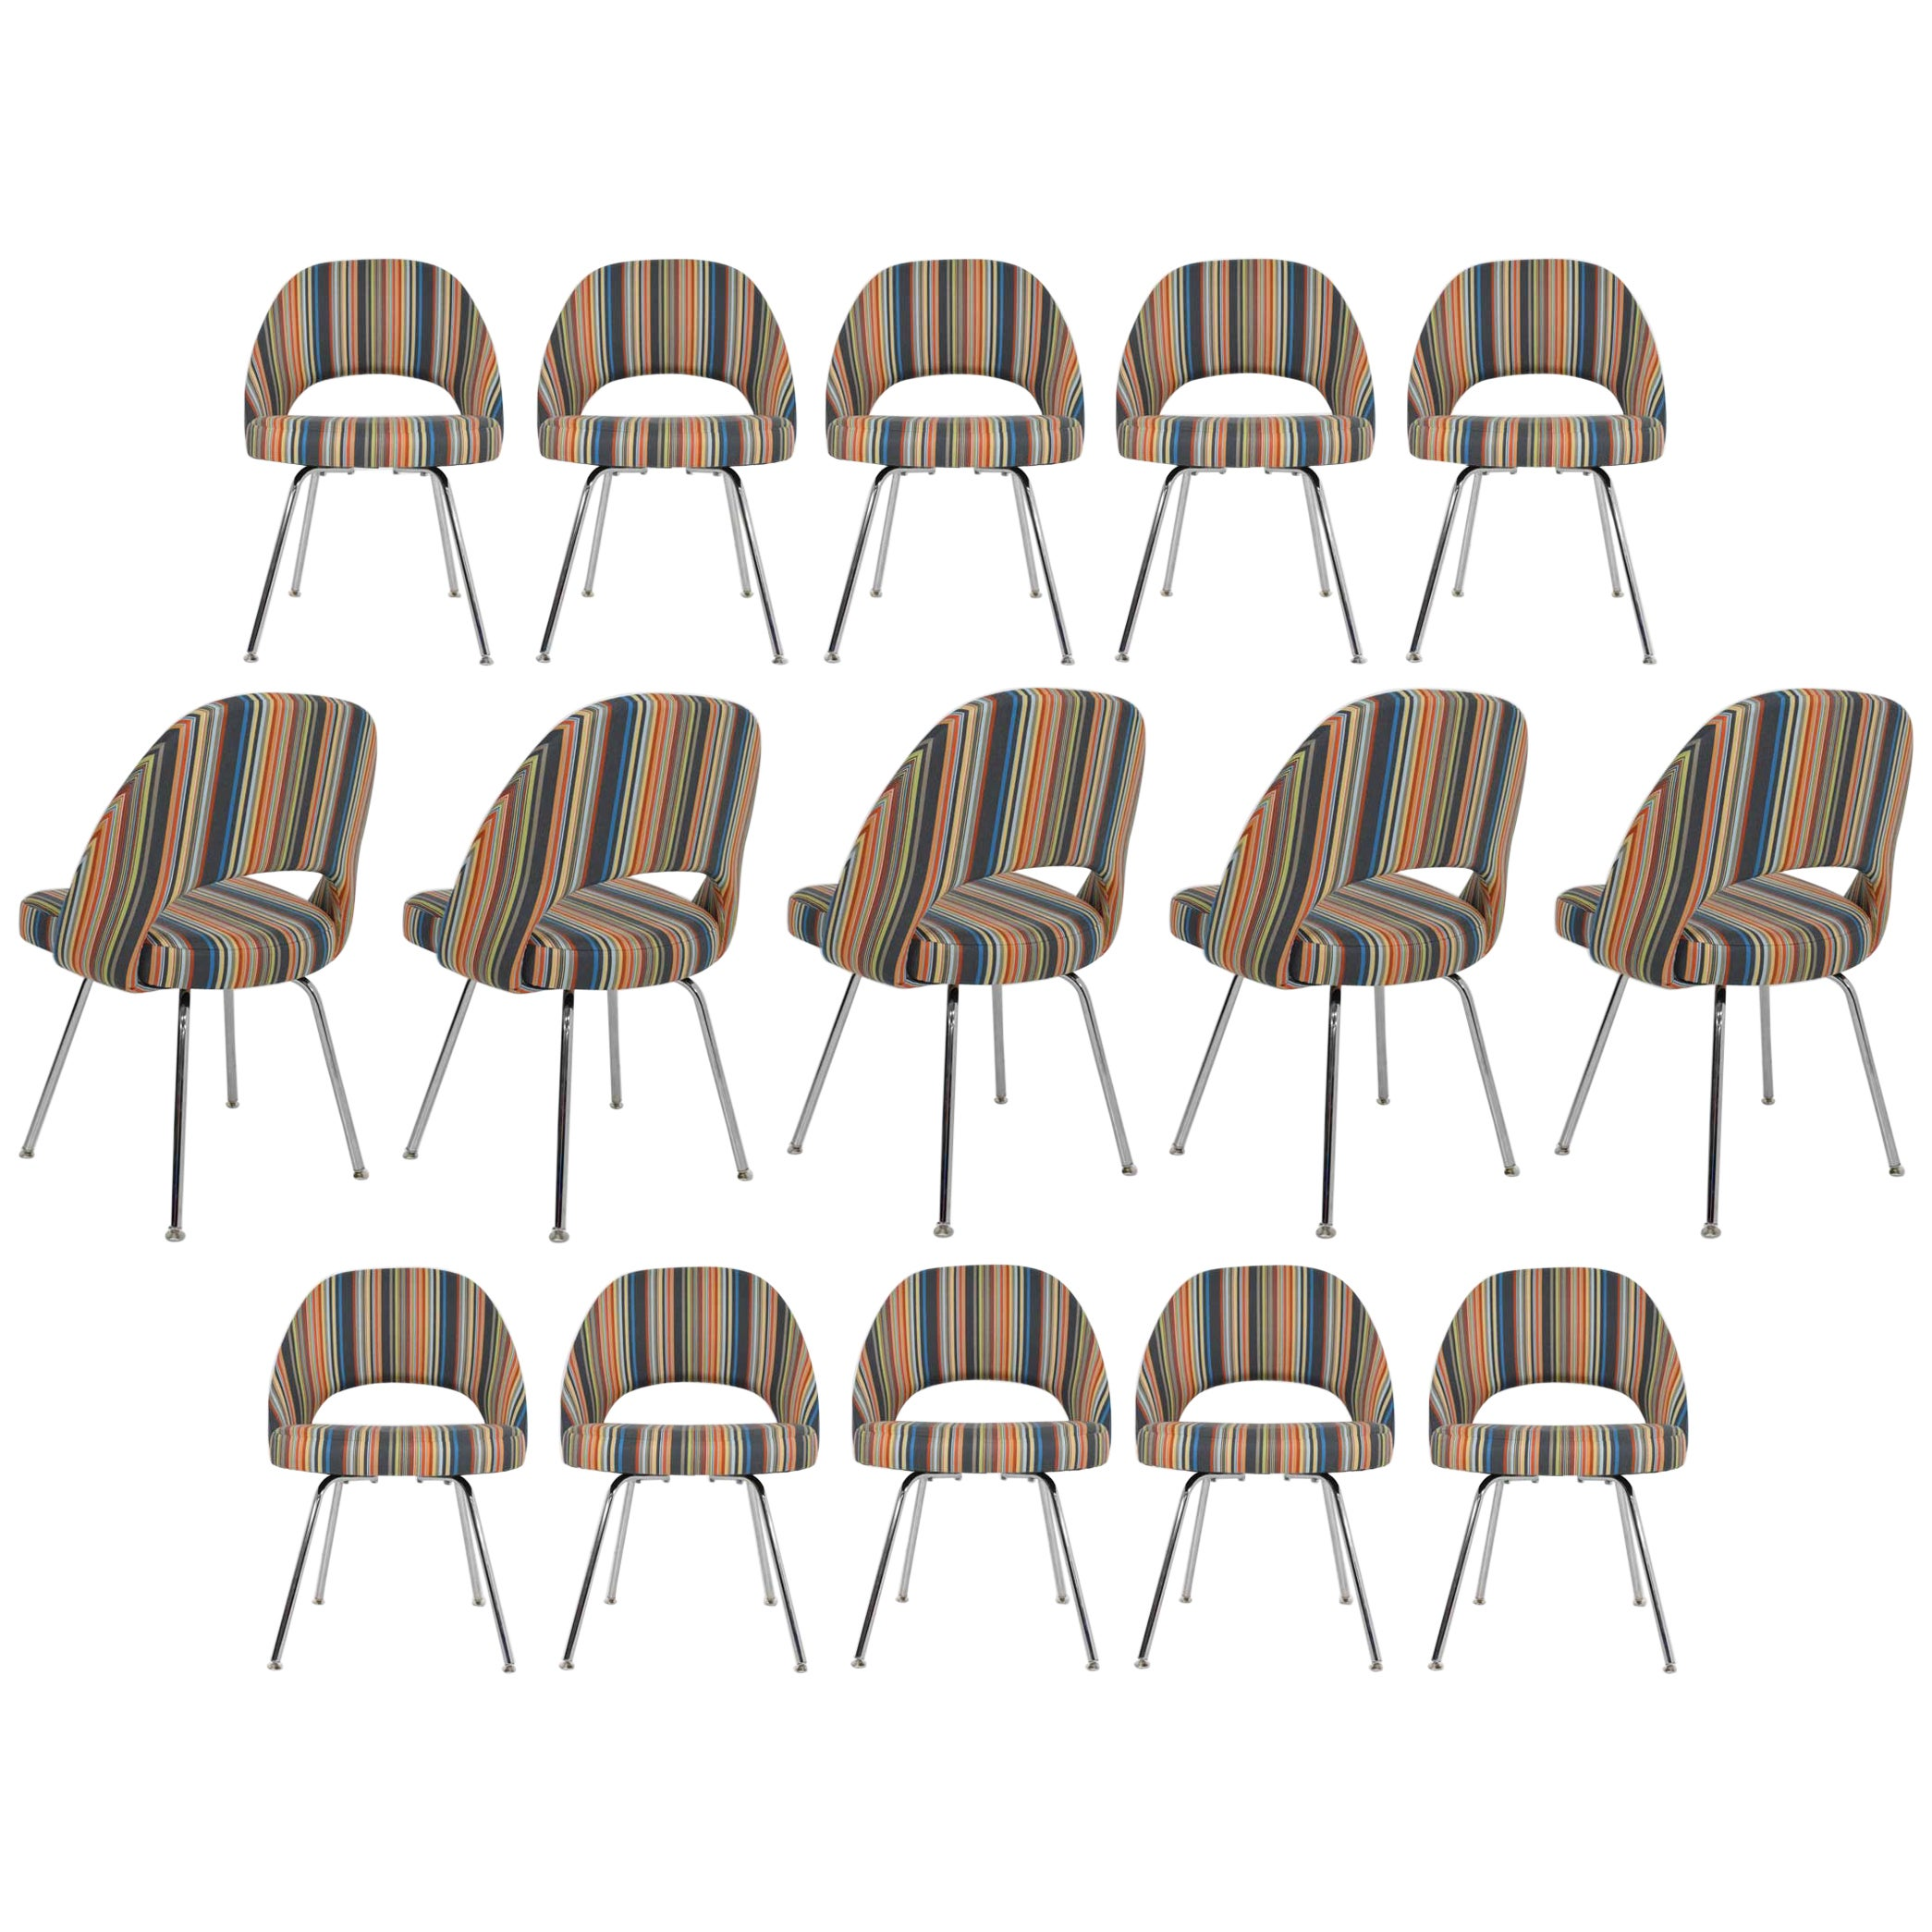 Eero Saarinen for Knoll Executive Chairs